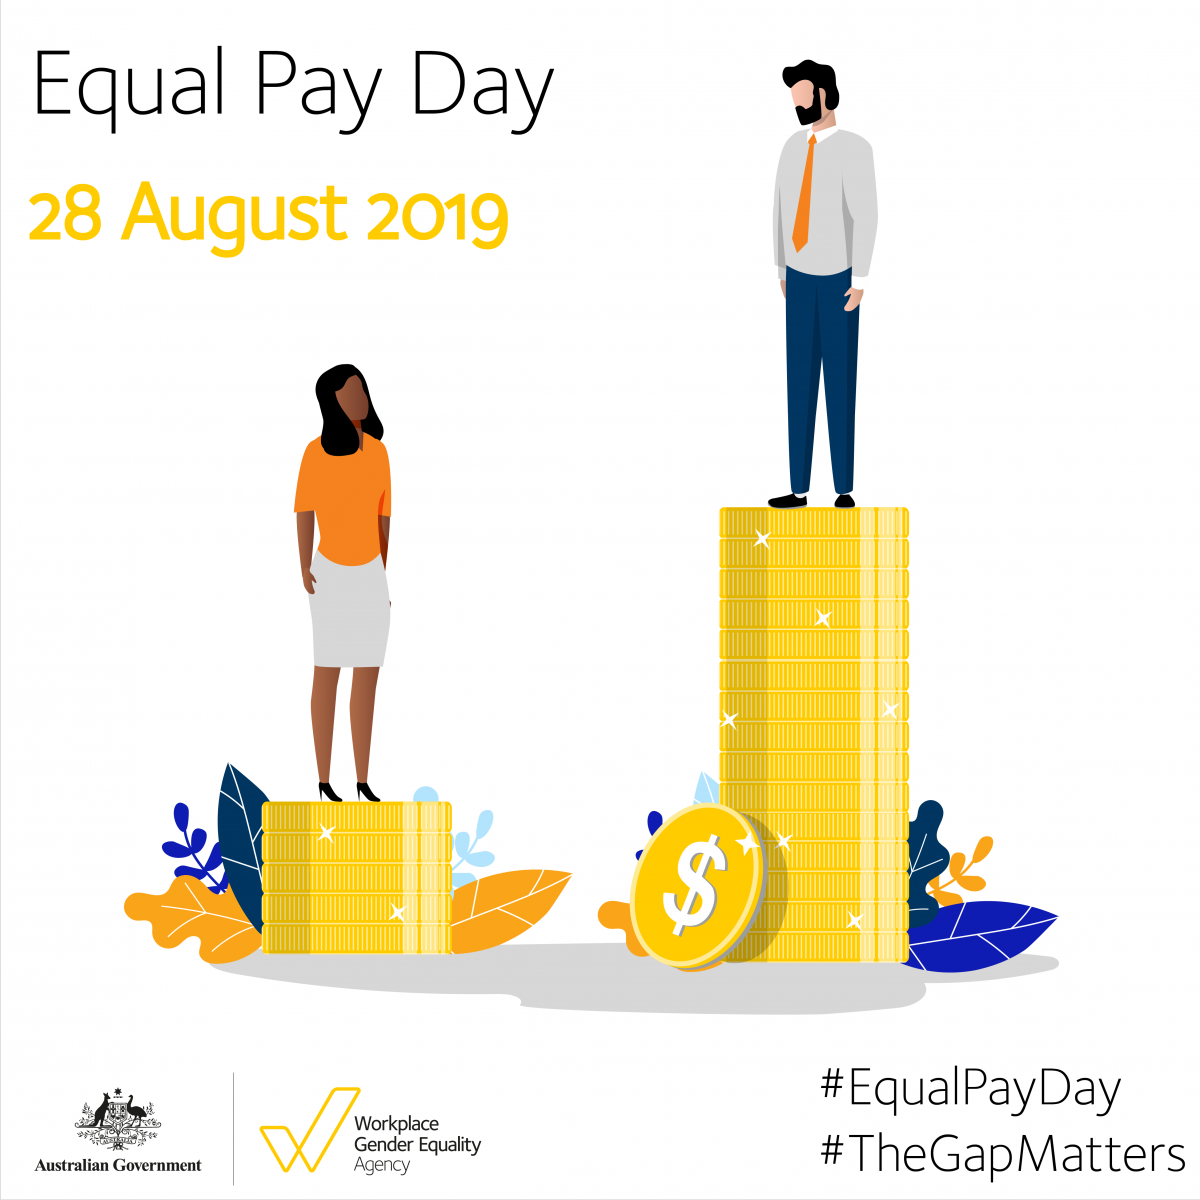 Equal Pay Day 2019 - 28 August